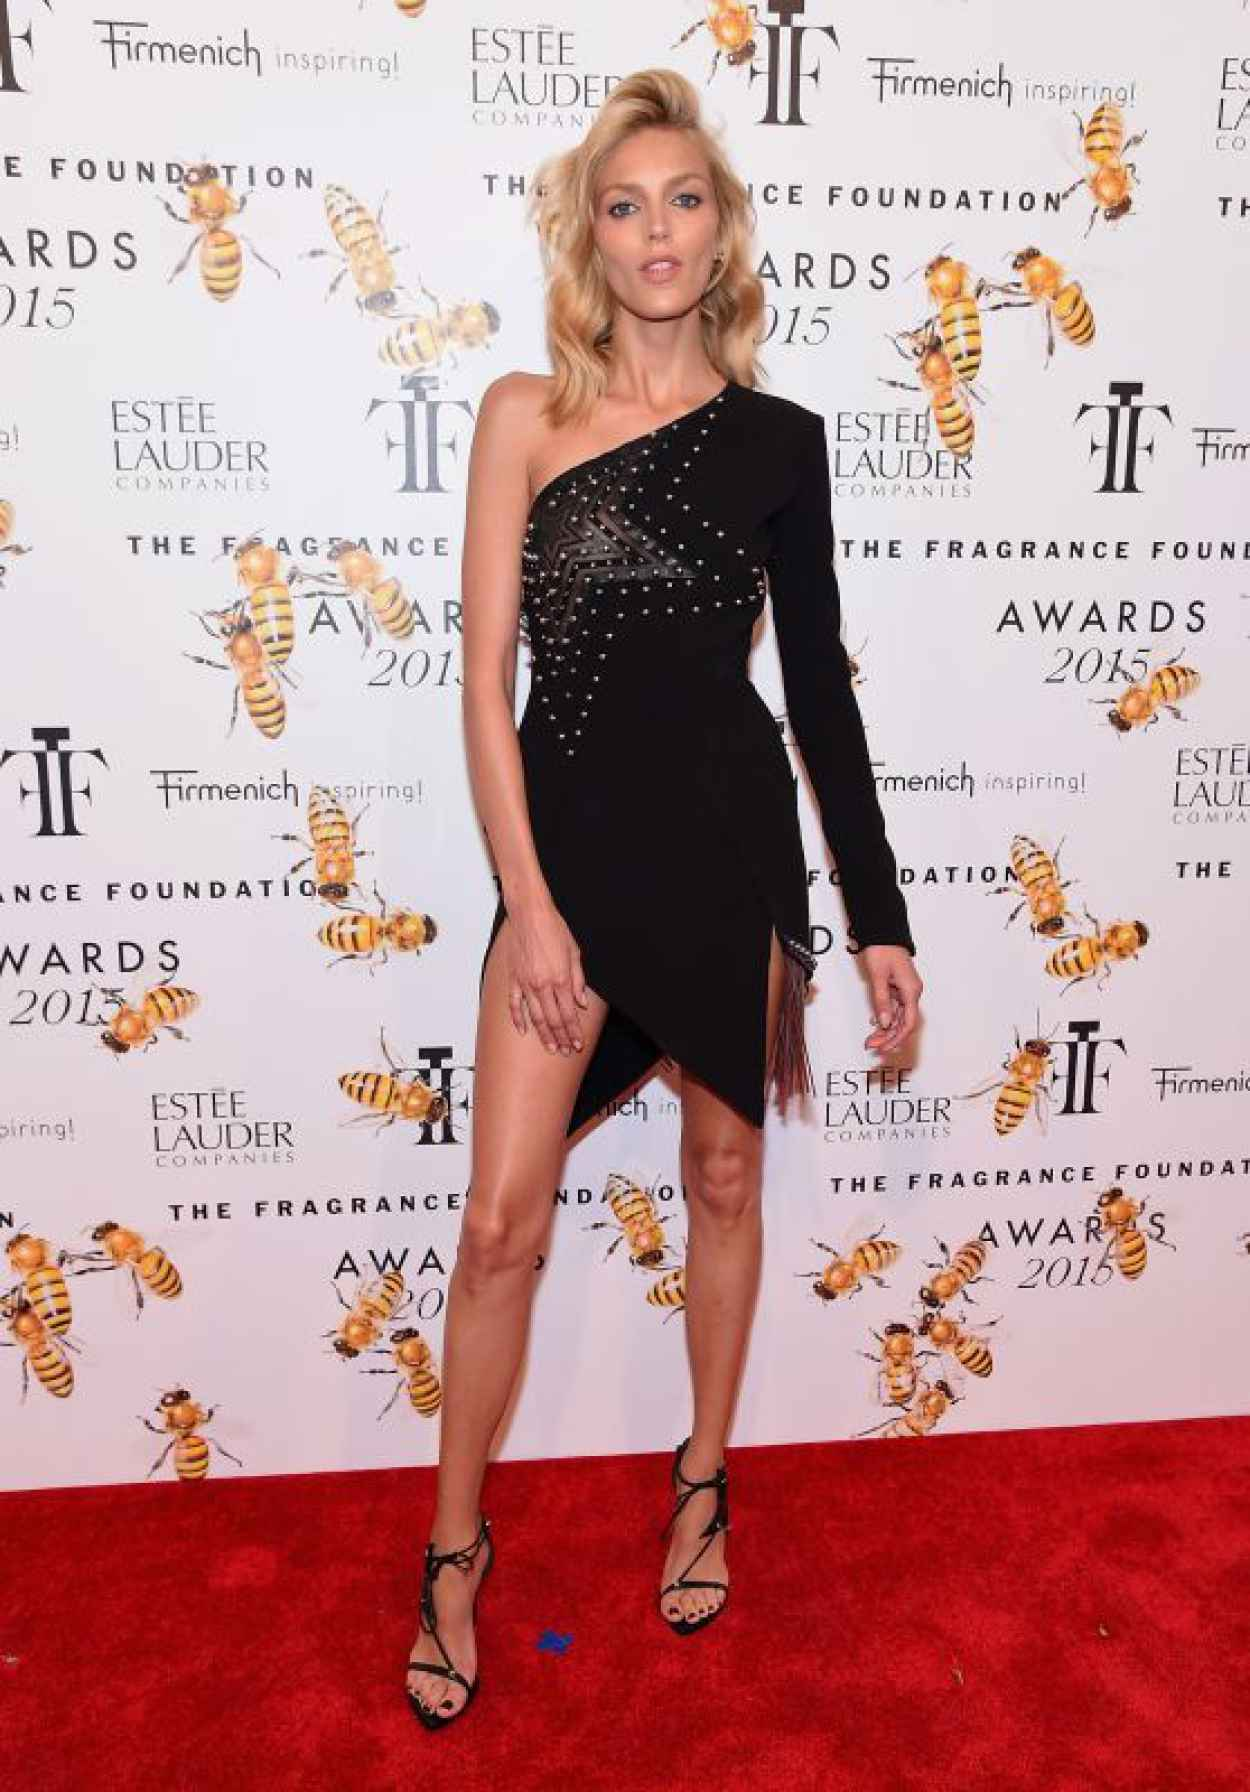 Anja Rubik - 2015 Fragrance Foundation Awards in NYC-1